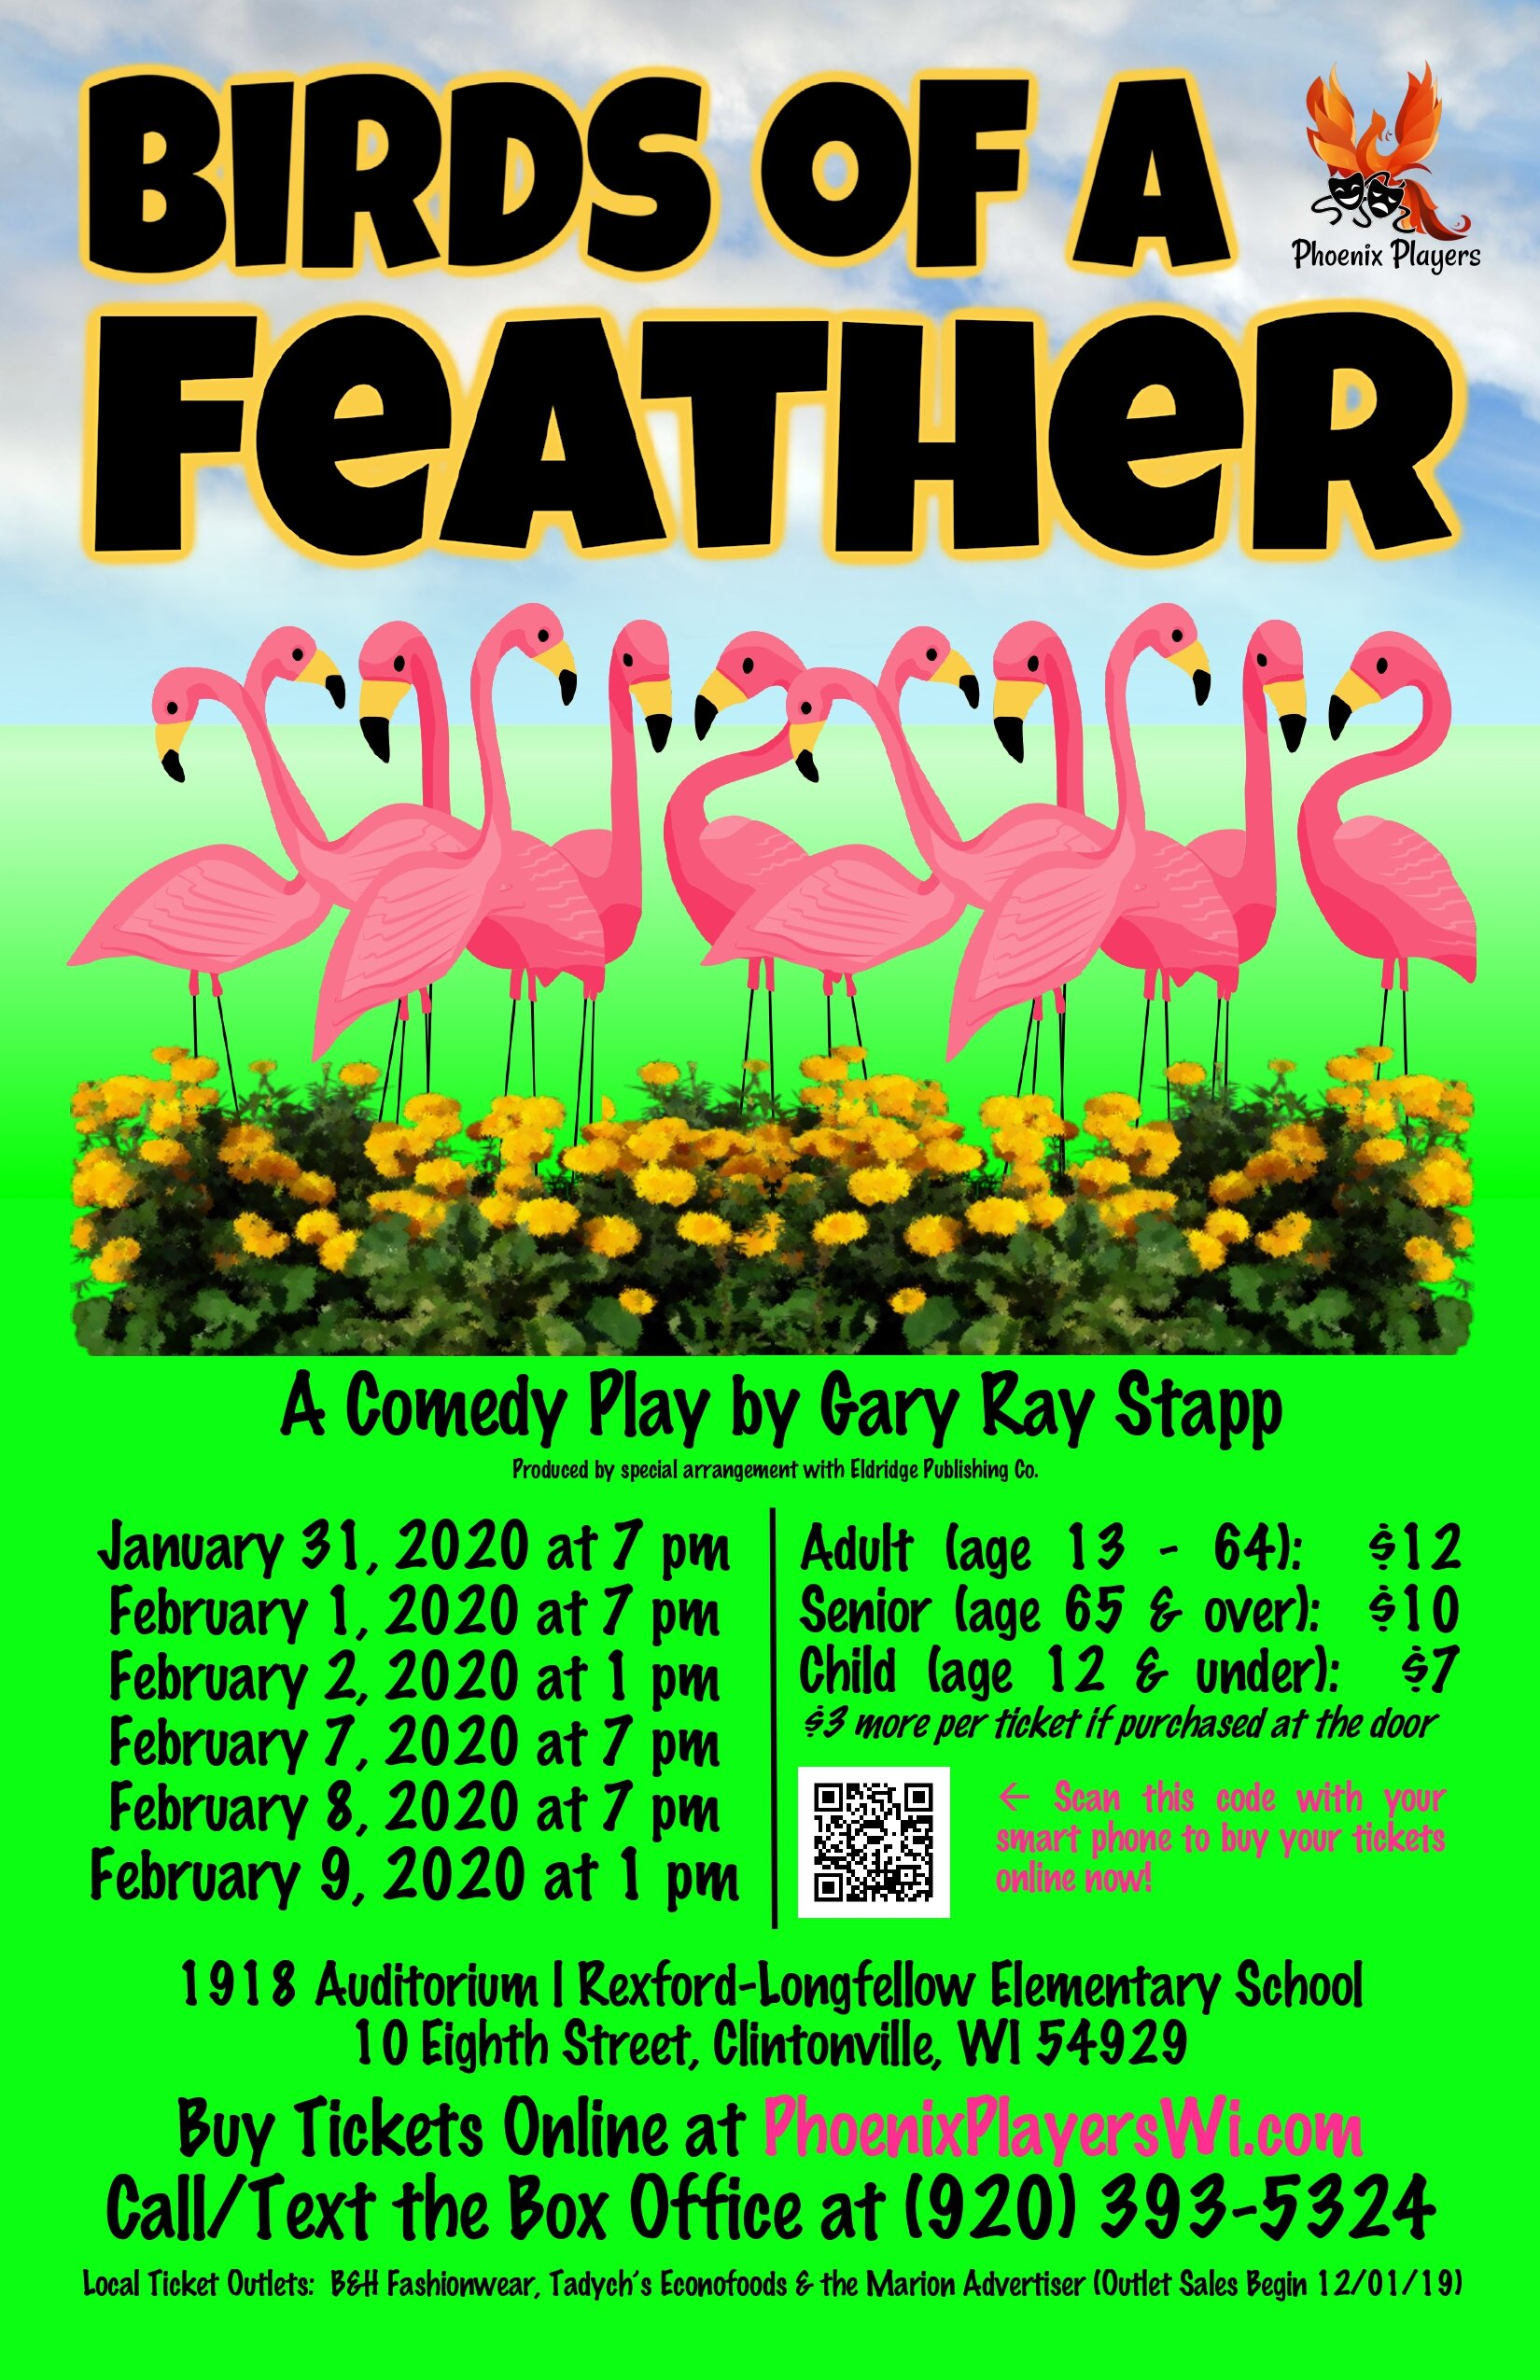 Birds Of A Feather Poster - Phoenix Players - Color.jpg